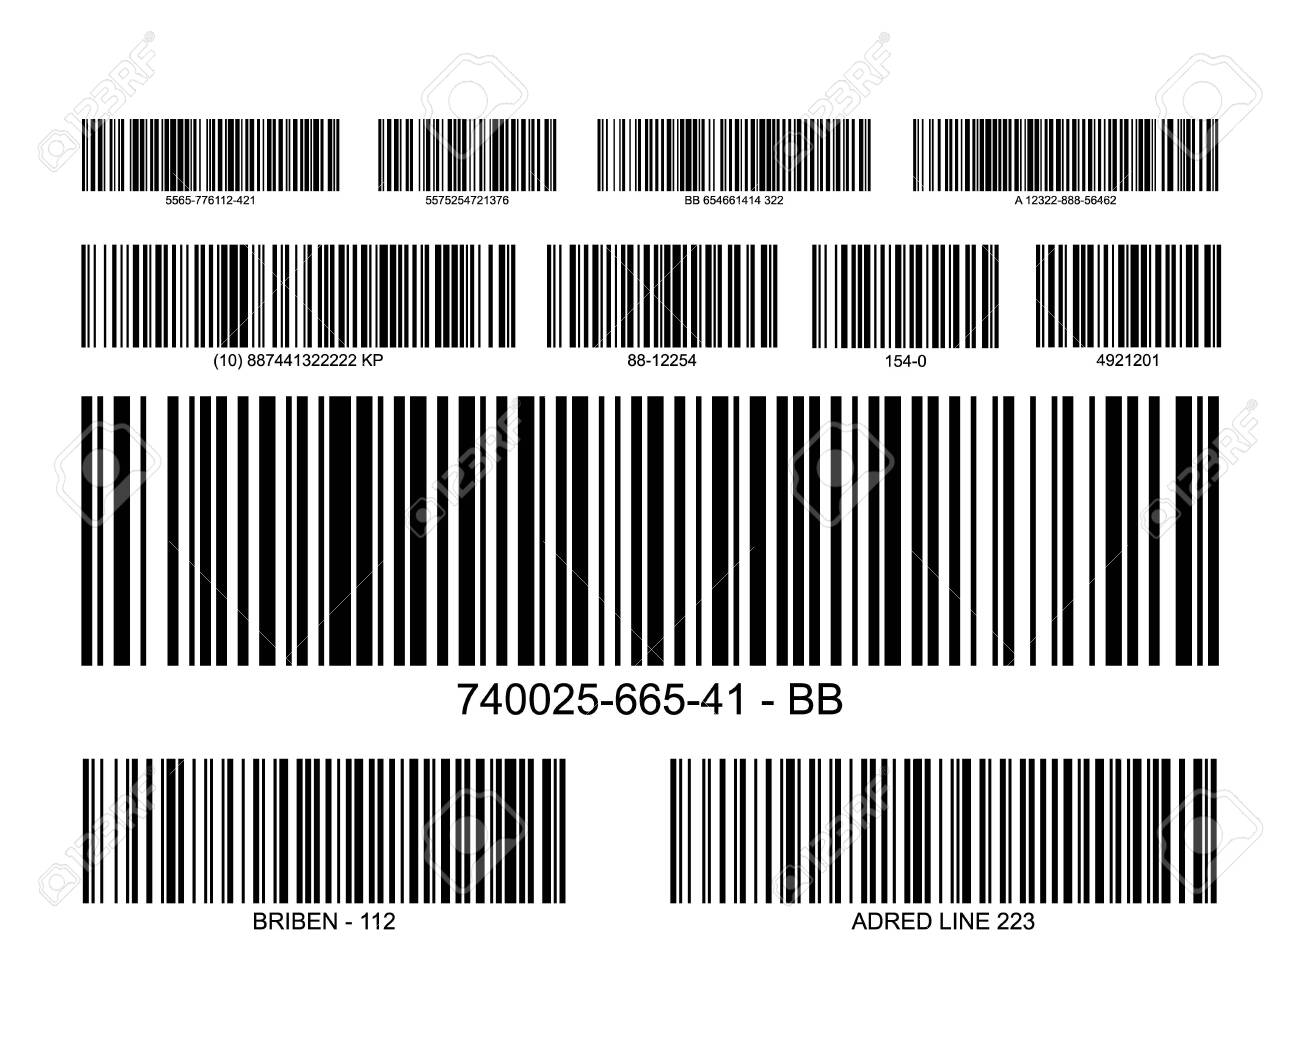 Bar code label price icon  Barcode scanner inventory retail information